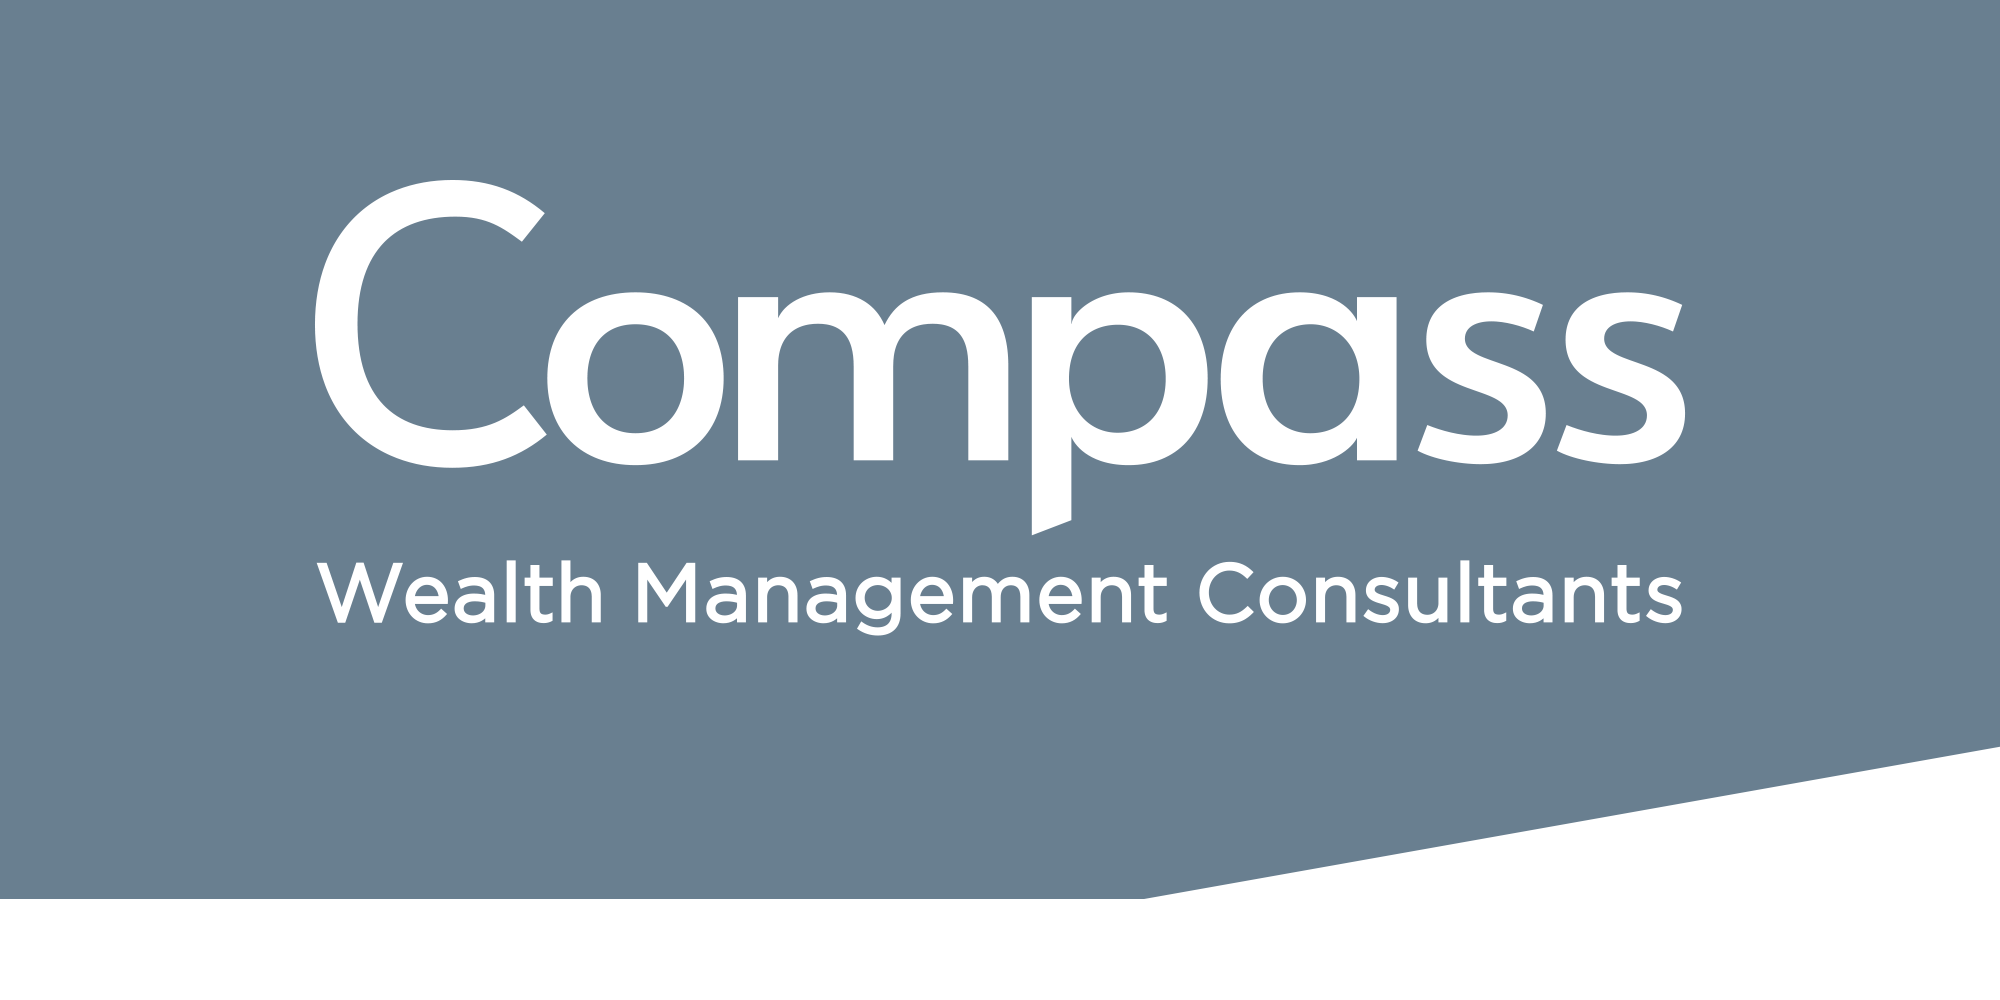 Compass Wealth Management Consultants